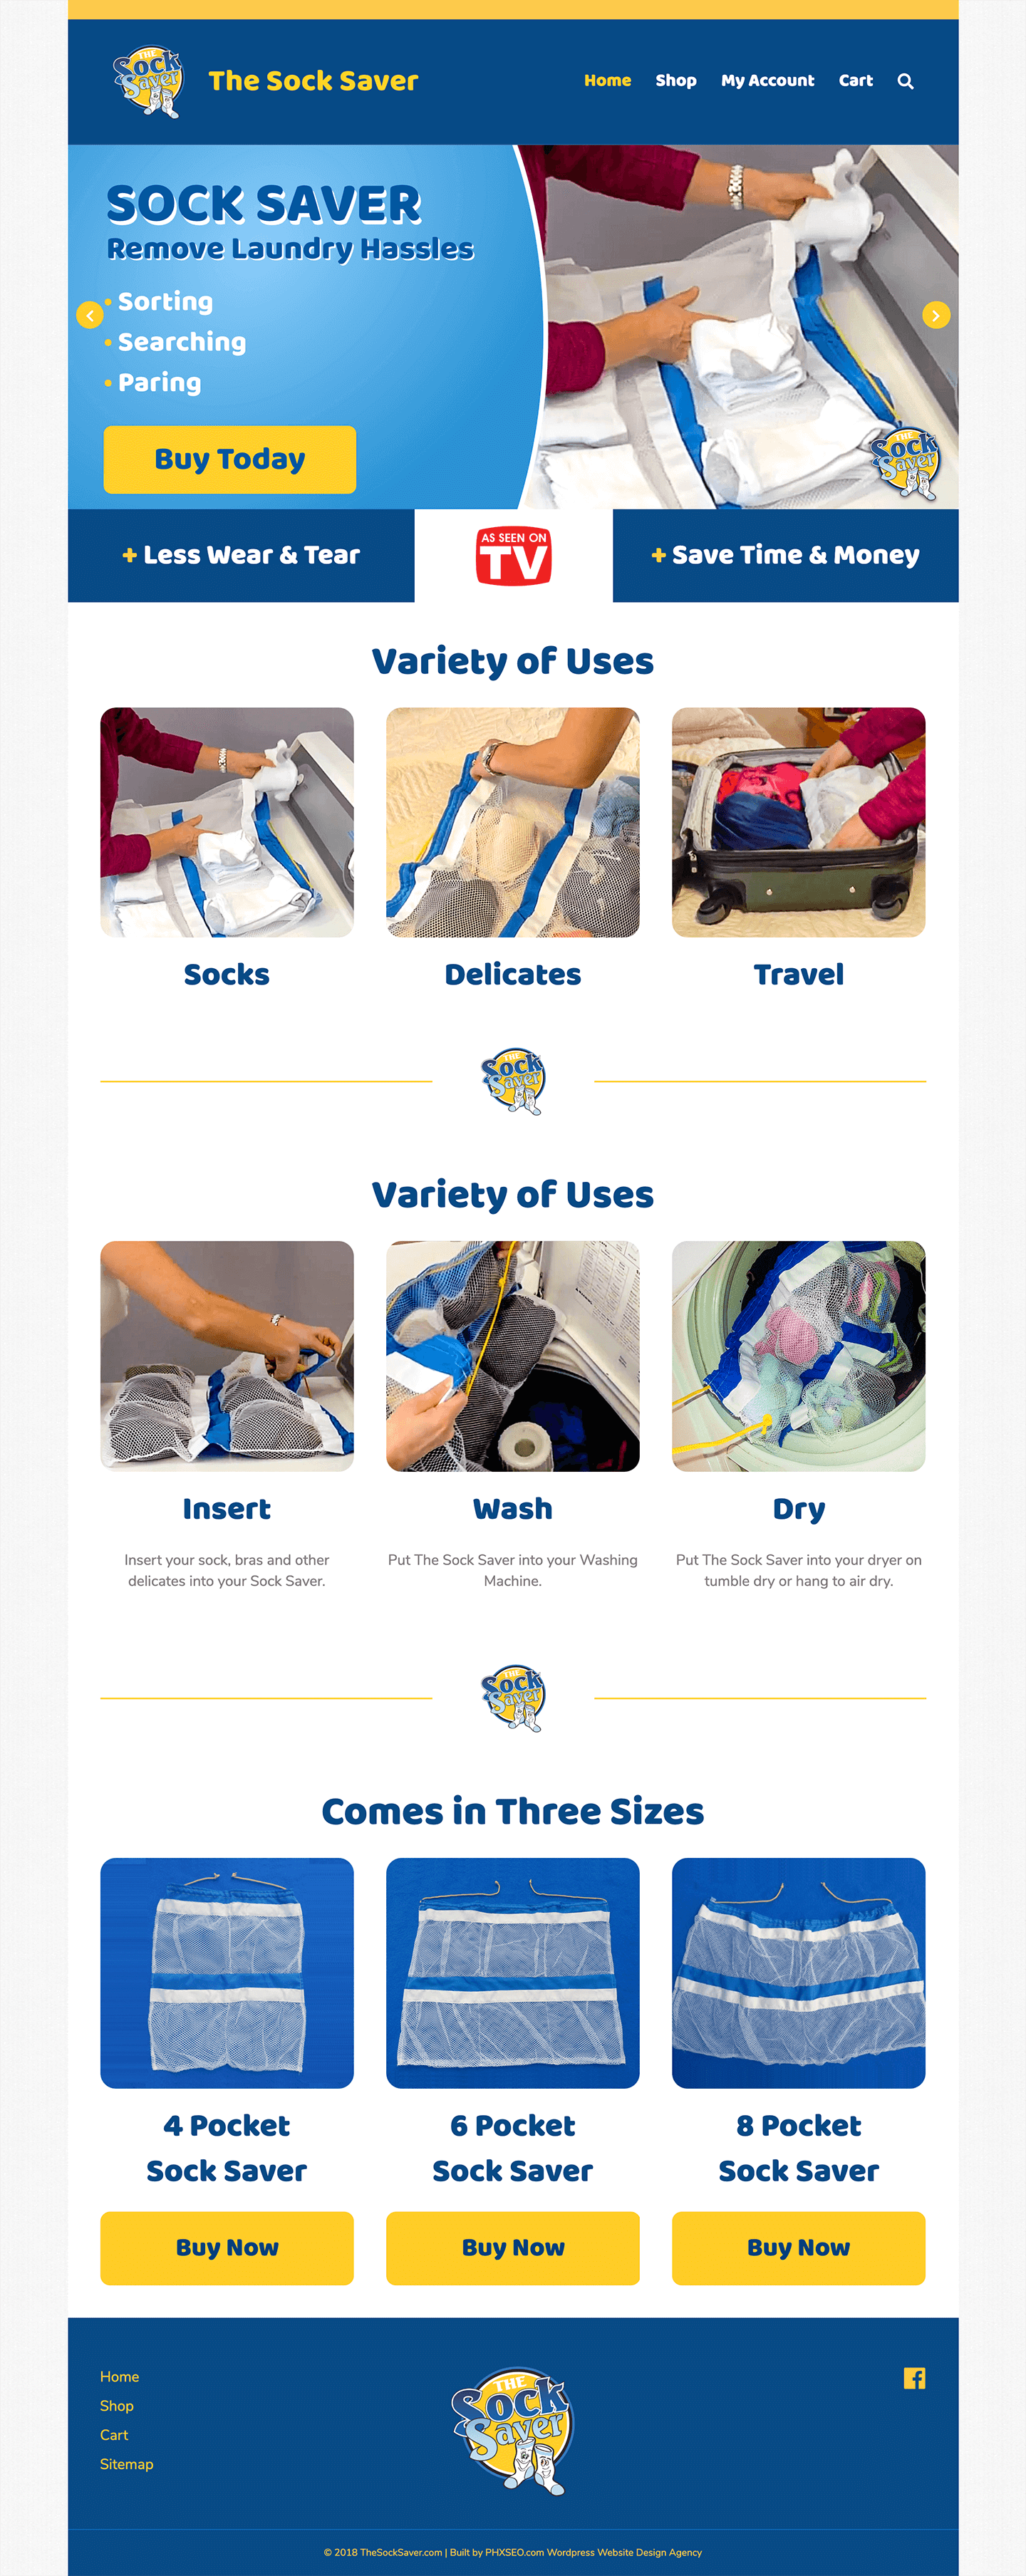 sock-saver-washable-laundry-bags-Website-Design-Home-Page-02